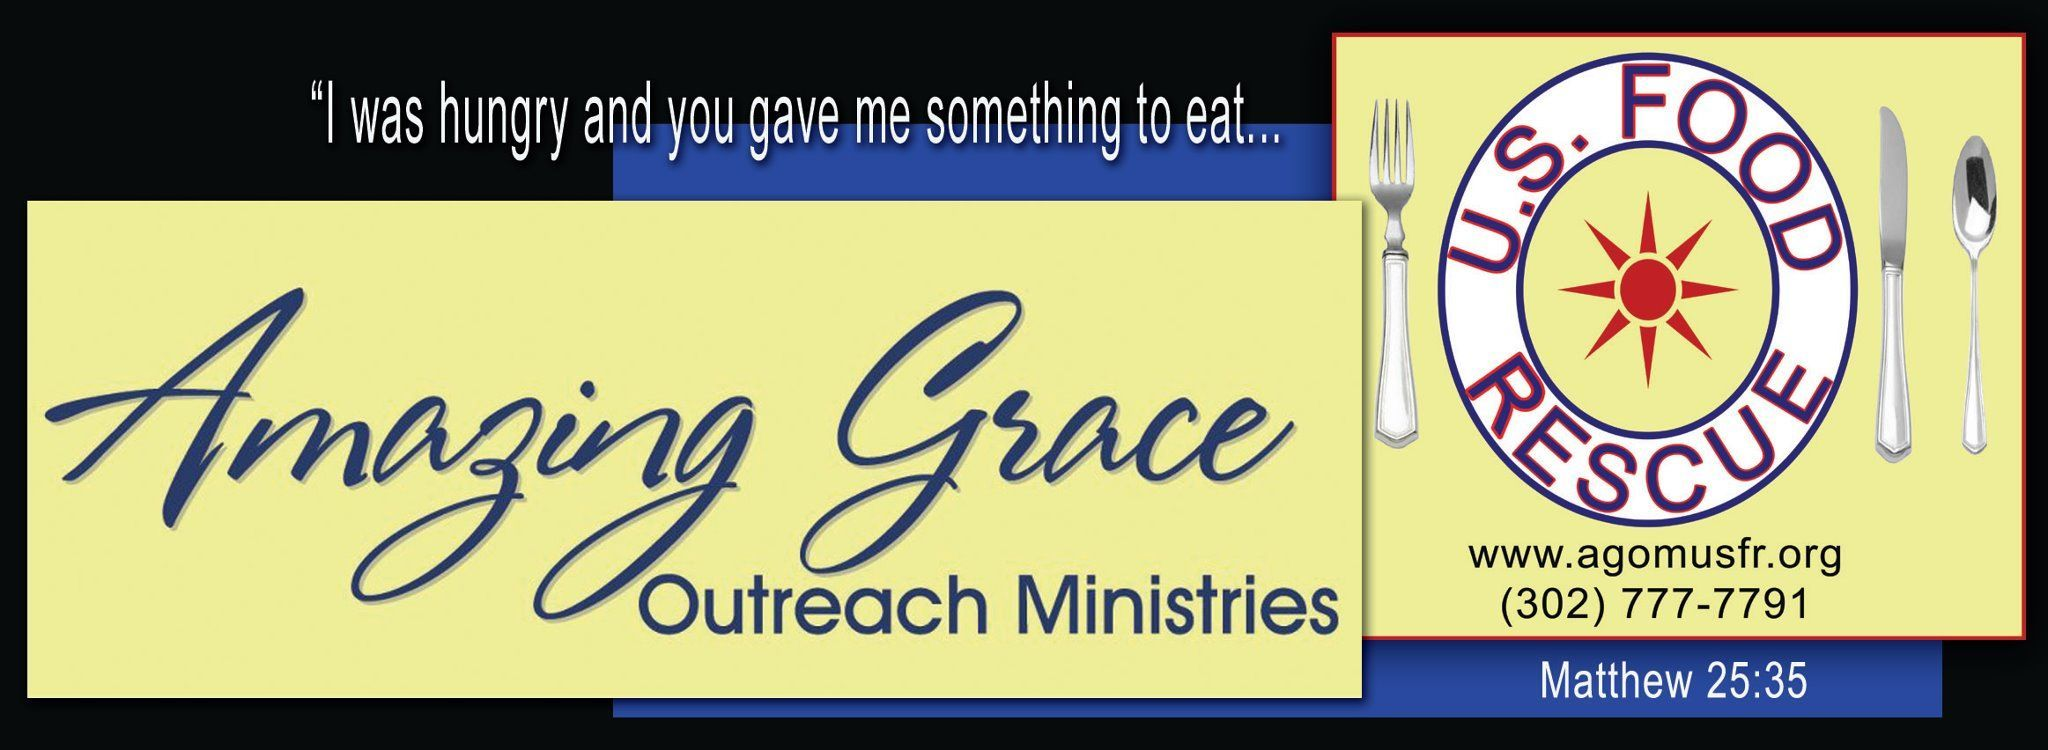 Amazing Grace Outreach Ministries  - Food Rescue